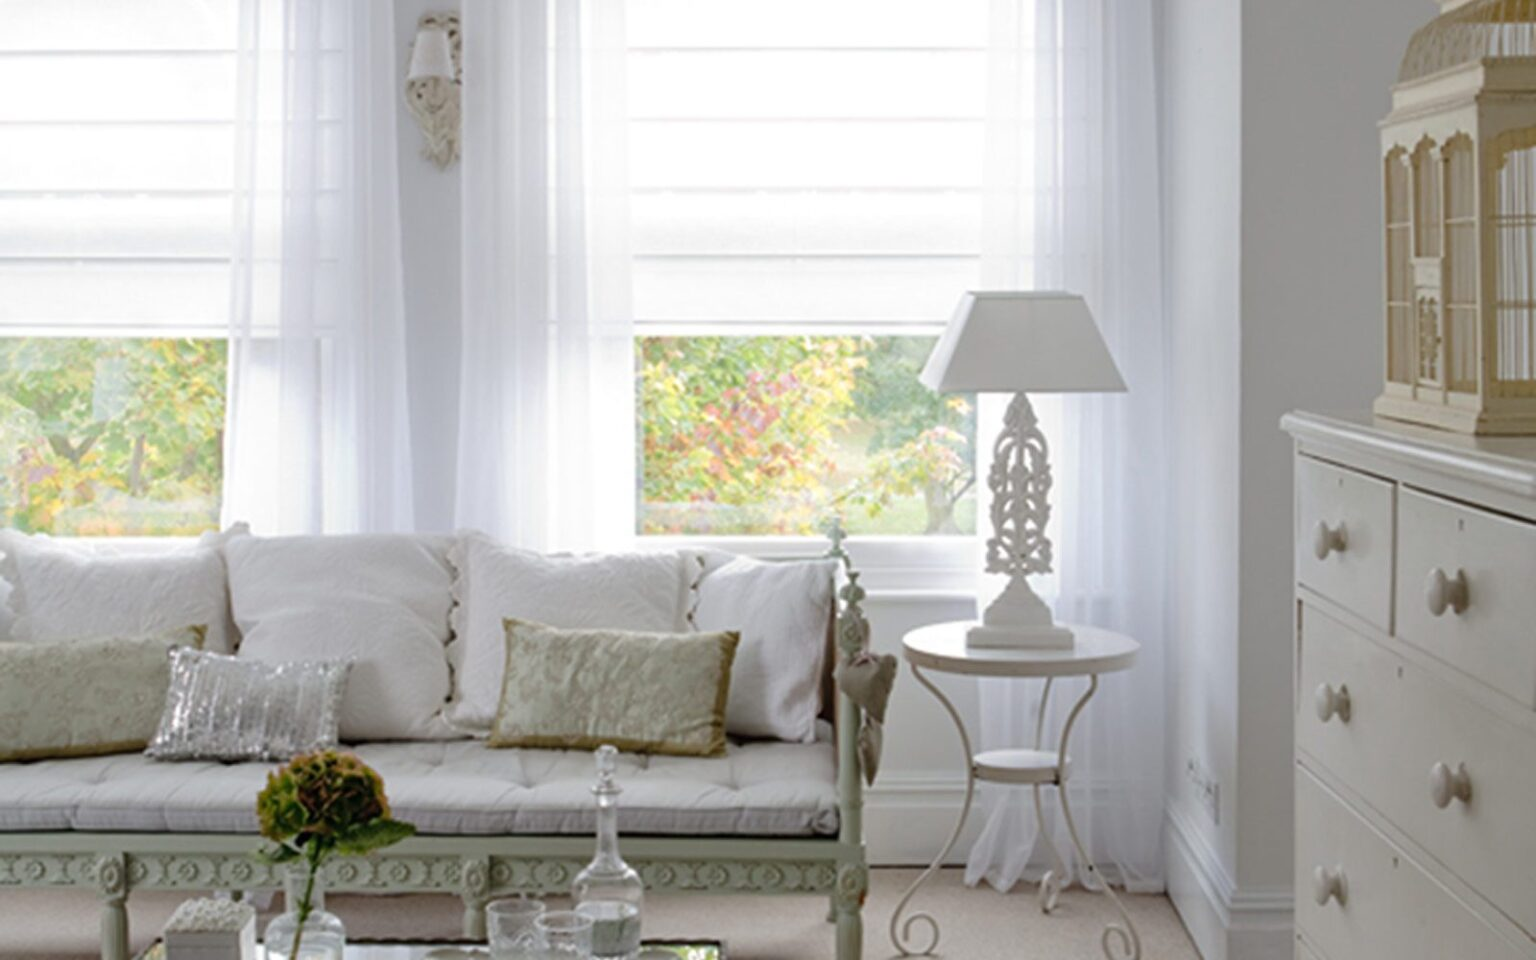 Voile Romand Blinds in a living room